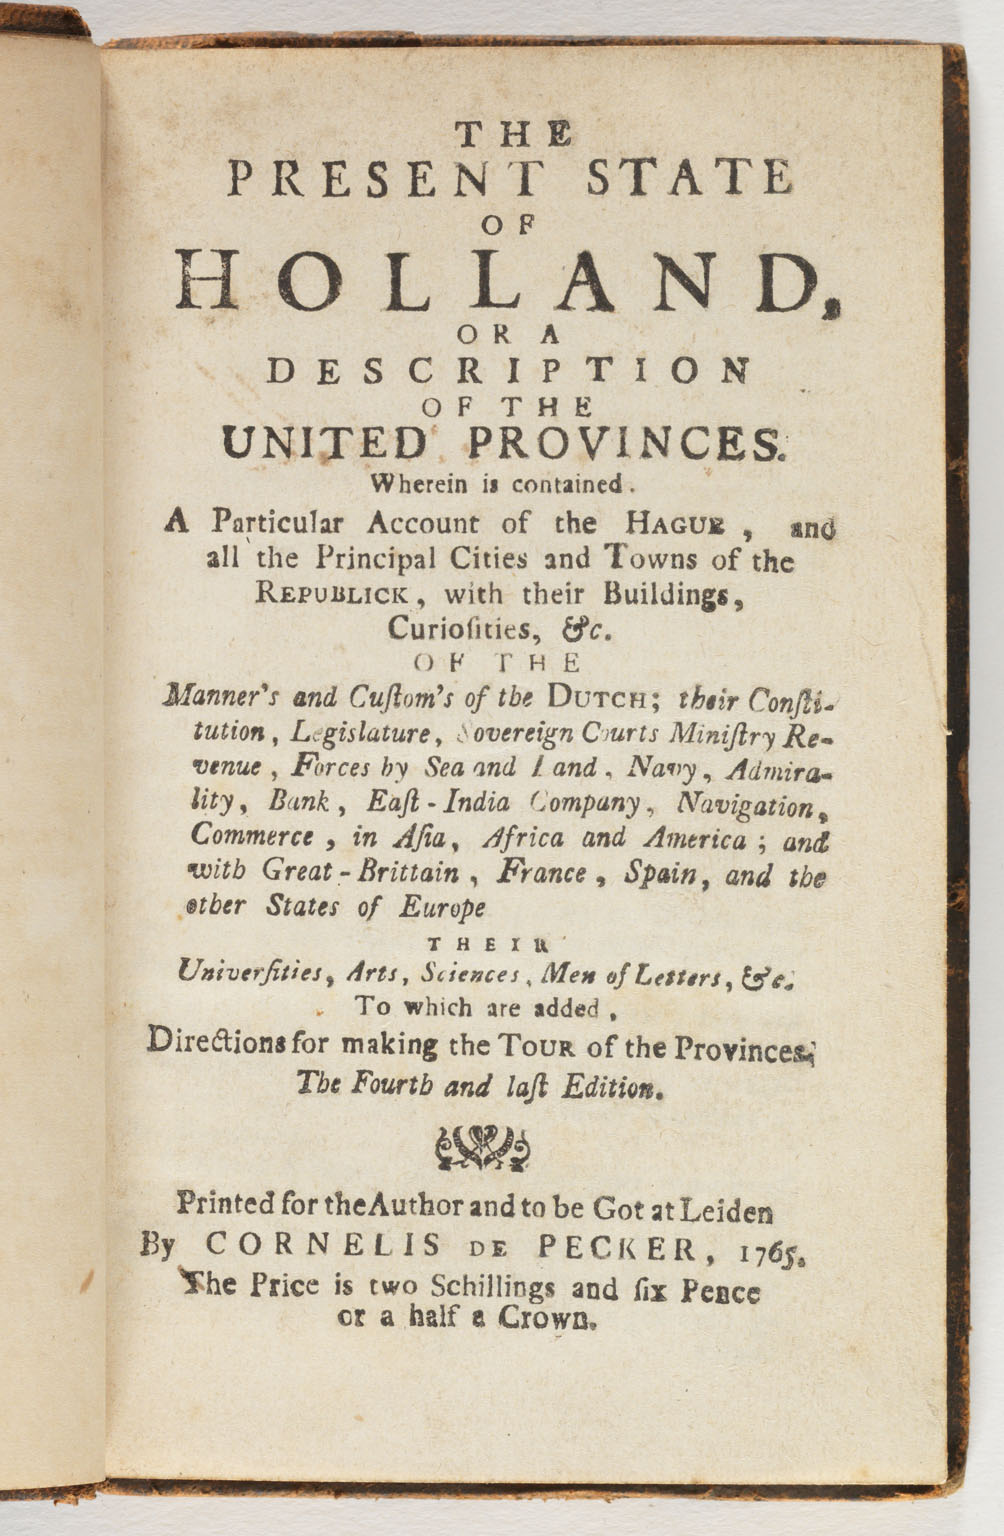 The present state of Holland, or, A description of the United Provinces